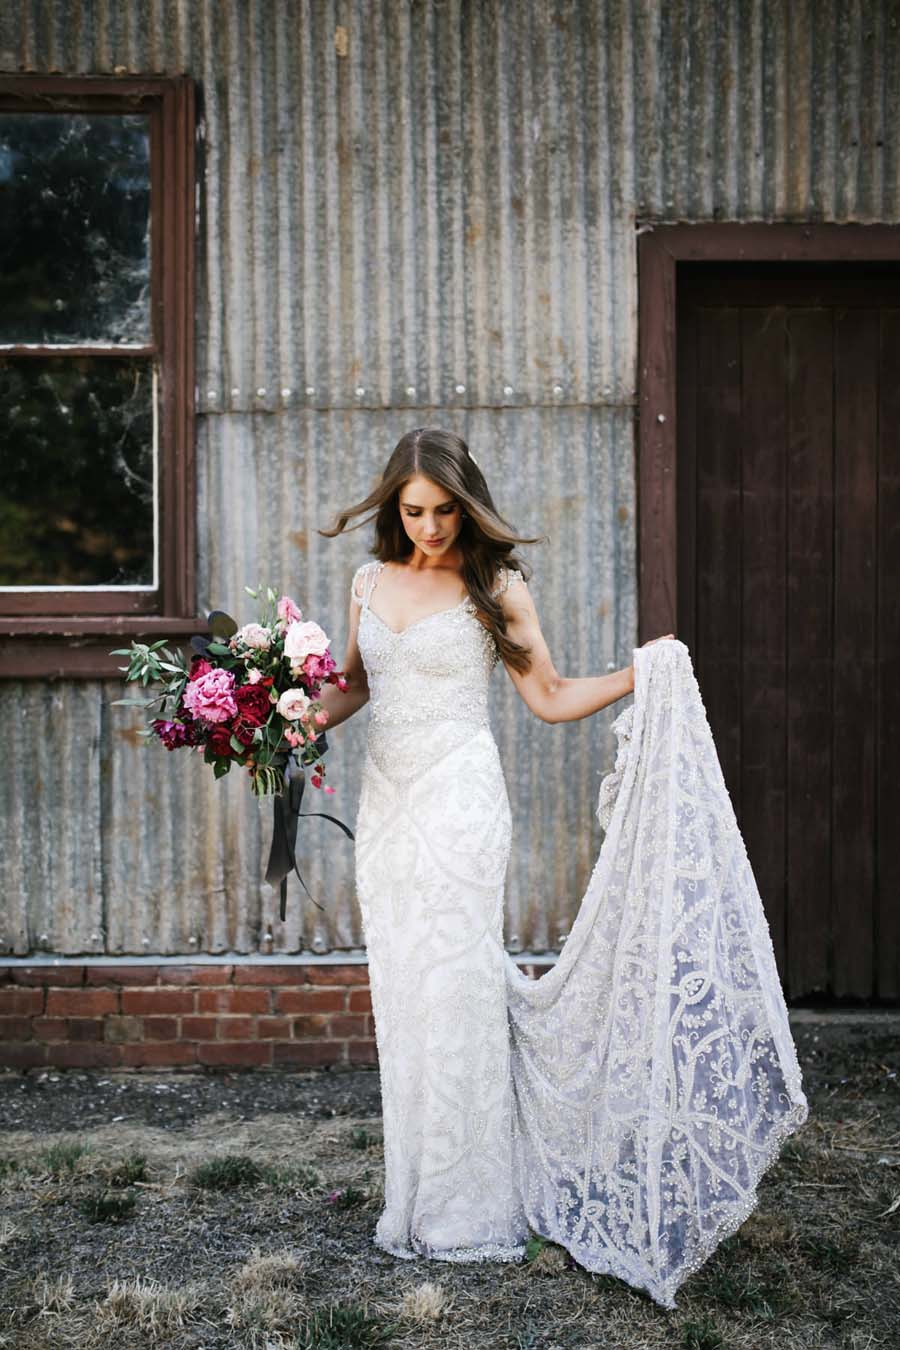 Amazing wedding dress designer anna campbell 39 s rustic glam for Custom wedding dress designers